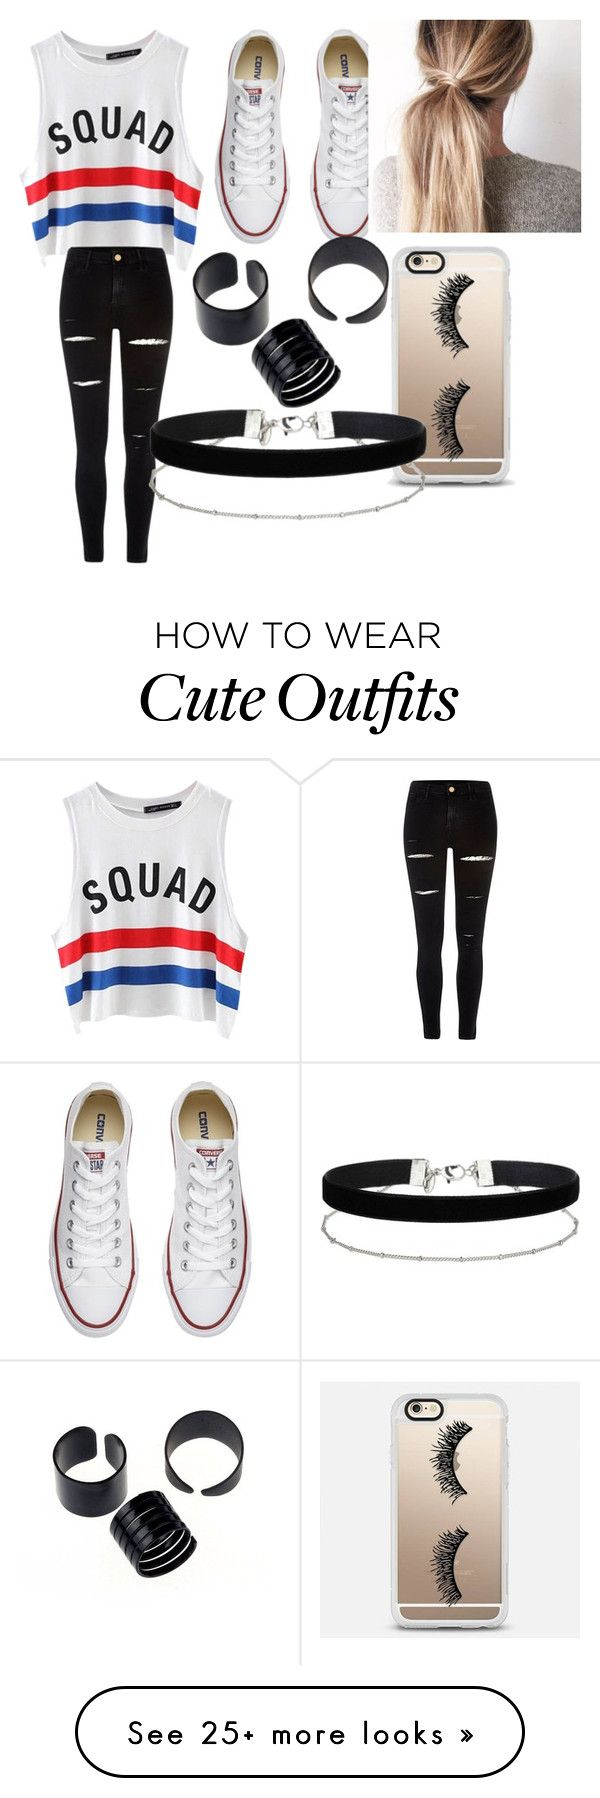 """Squad outfit"" by baileesandy on Polyvore featuring Chicnova Fashion, River Island, Converse, Casetify and Miss Selfridge"